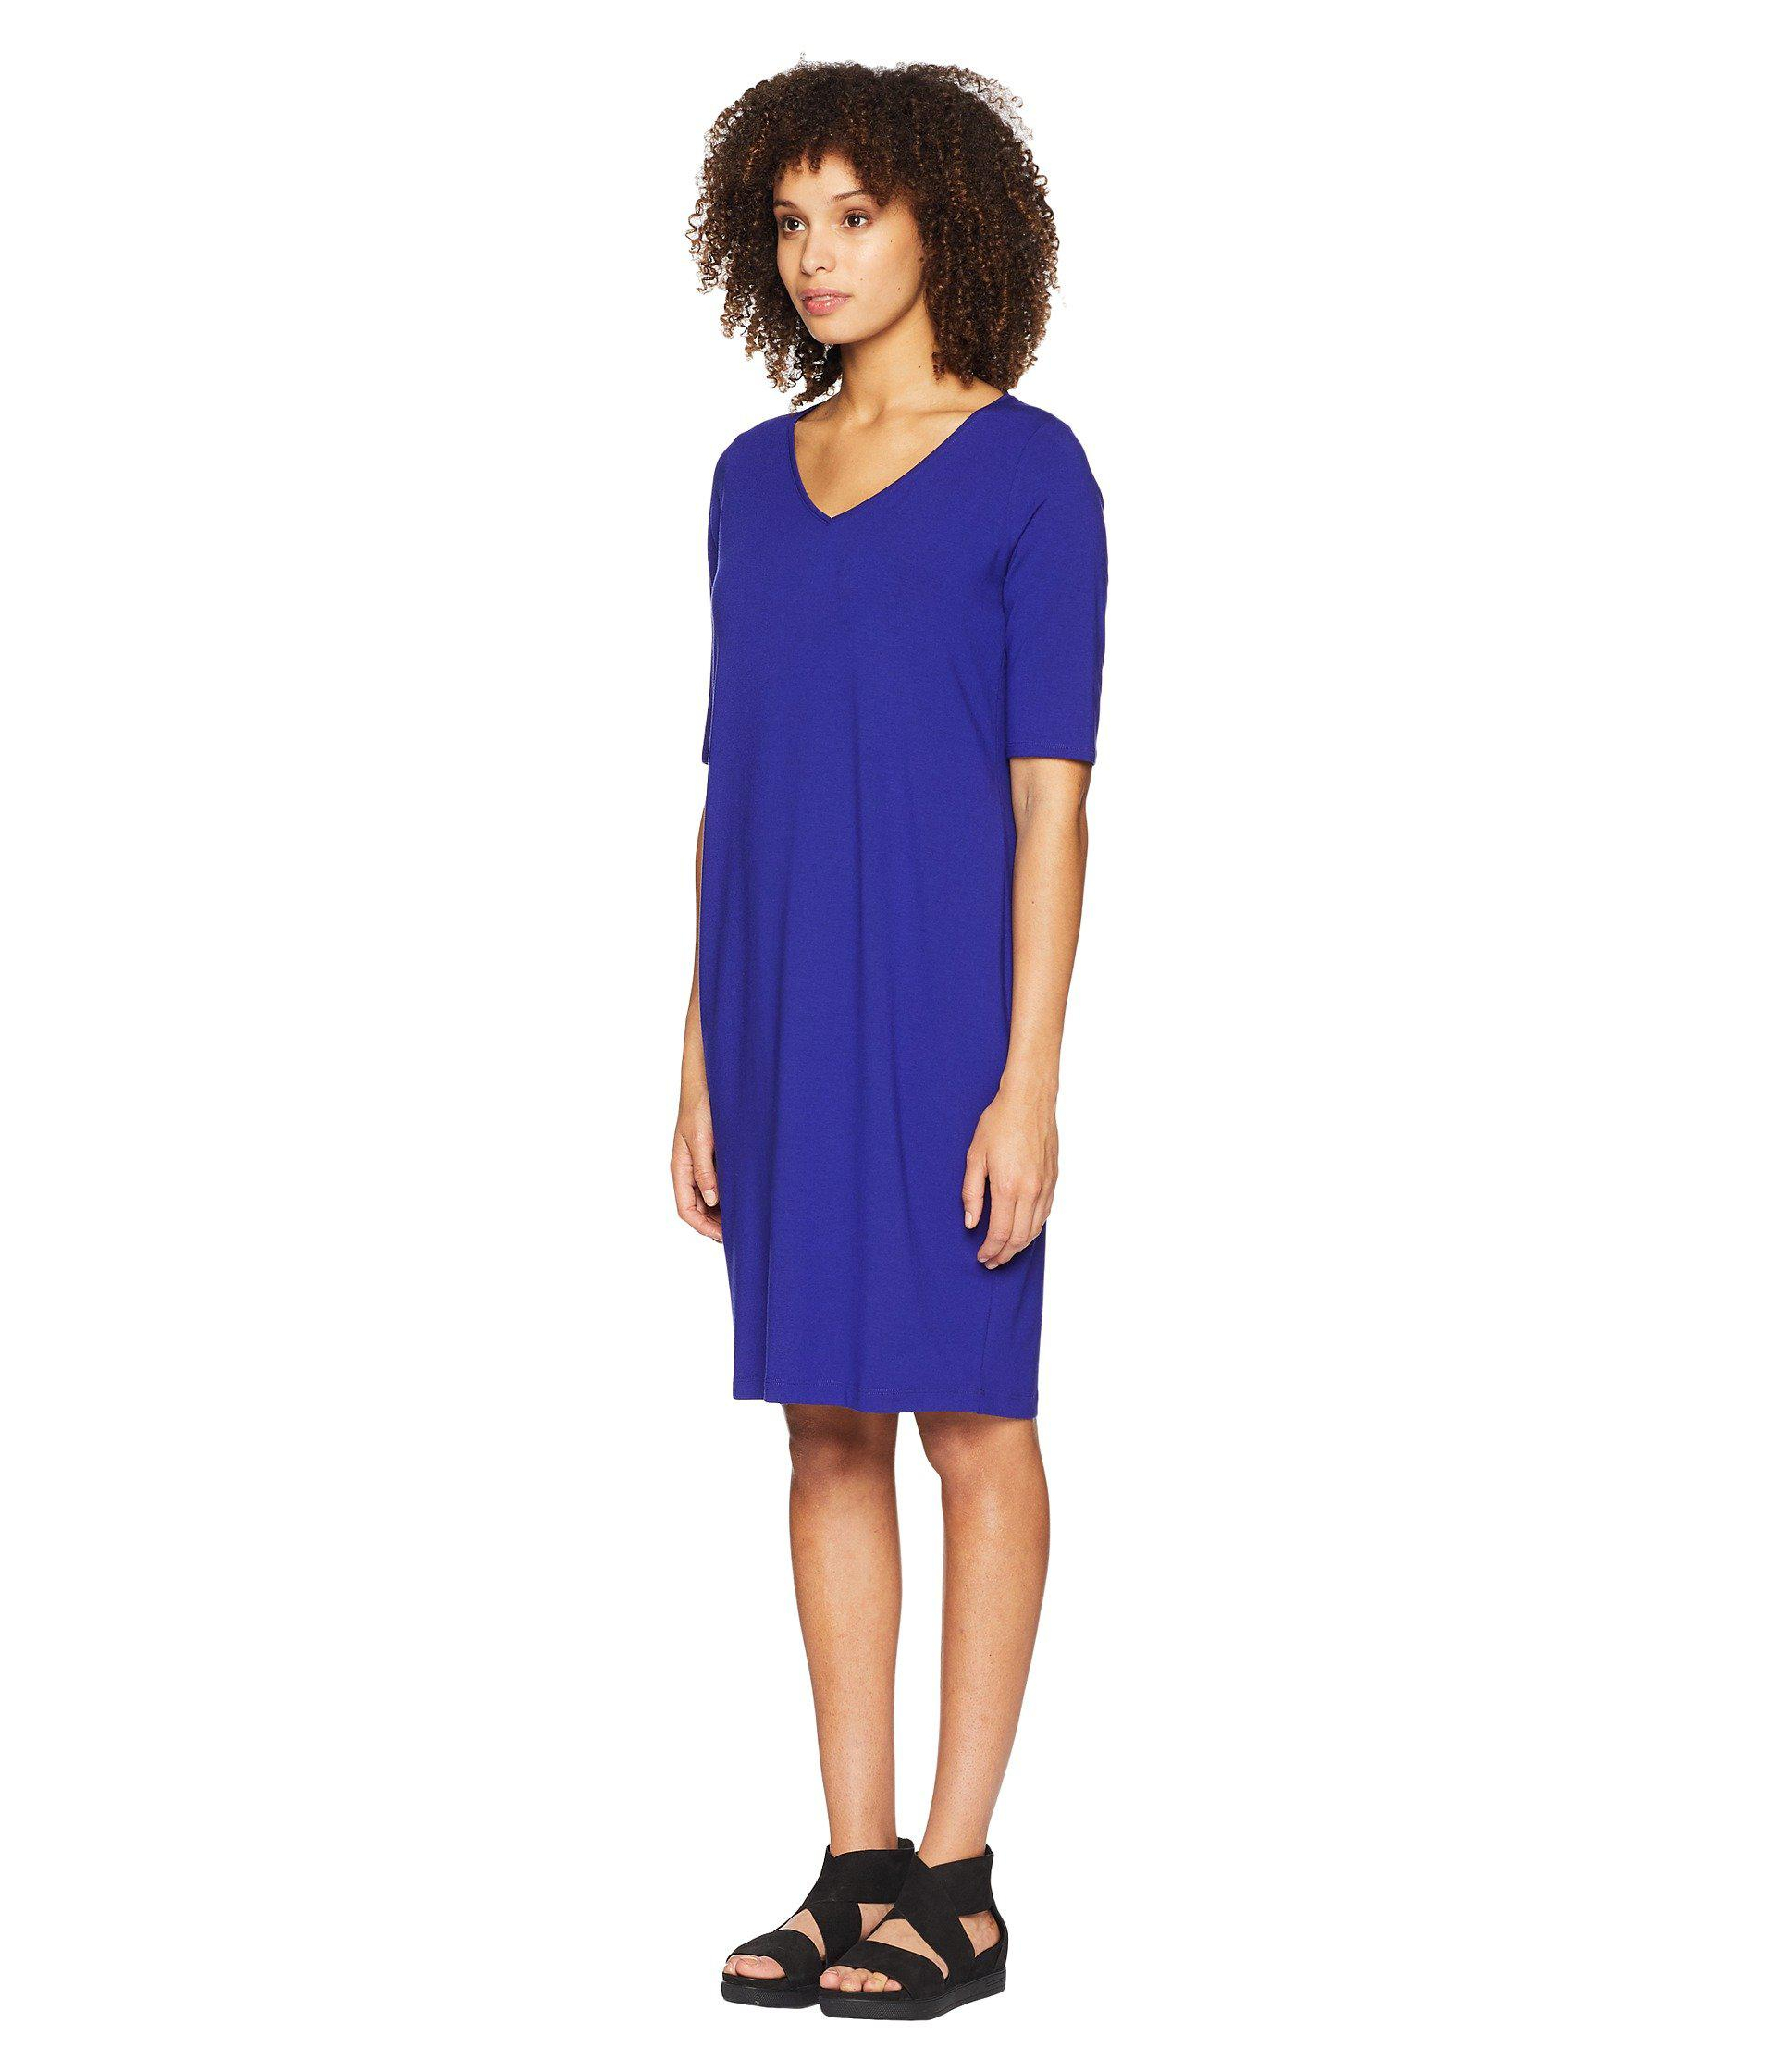 63dcbc2790 Lyst - Eileen Fisher V-neck Shift Dress in Blue - Save 50%